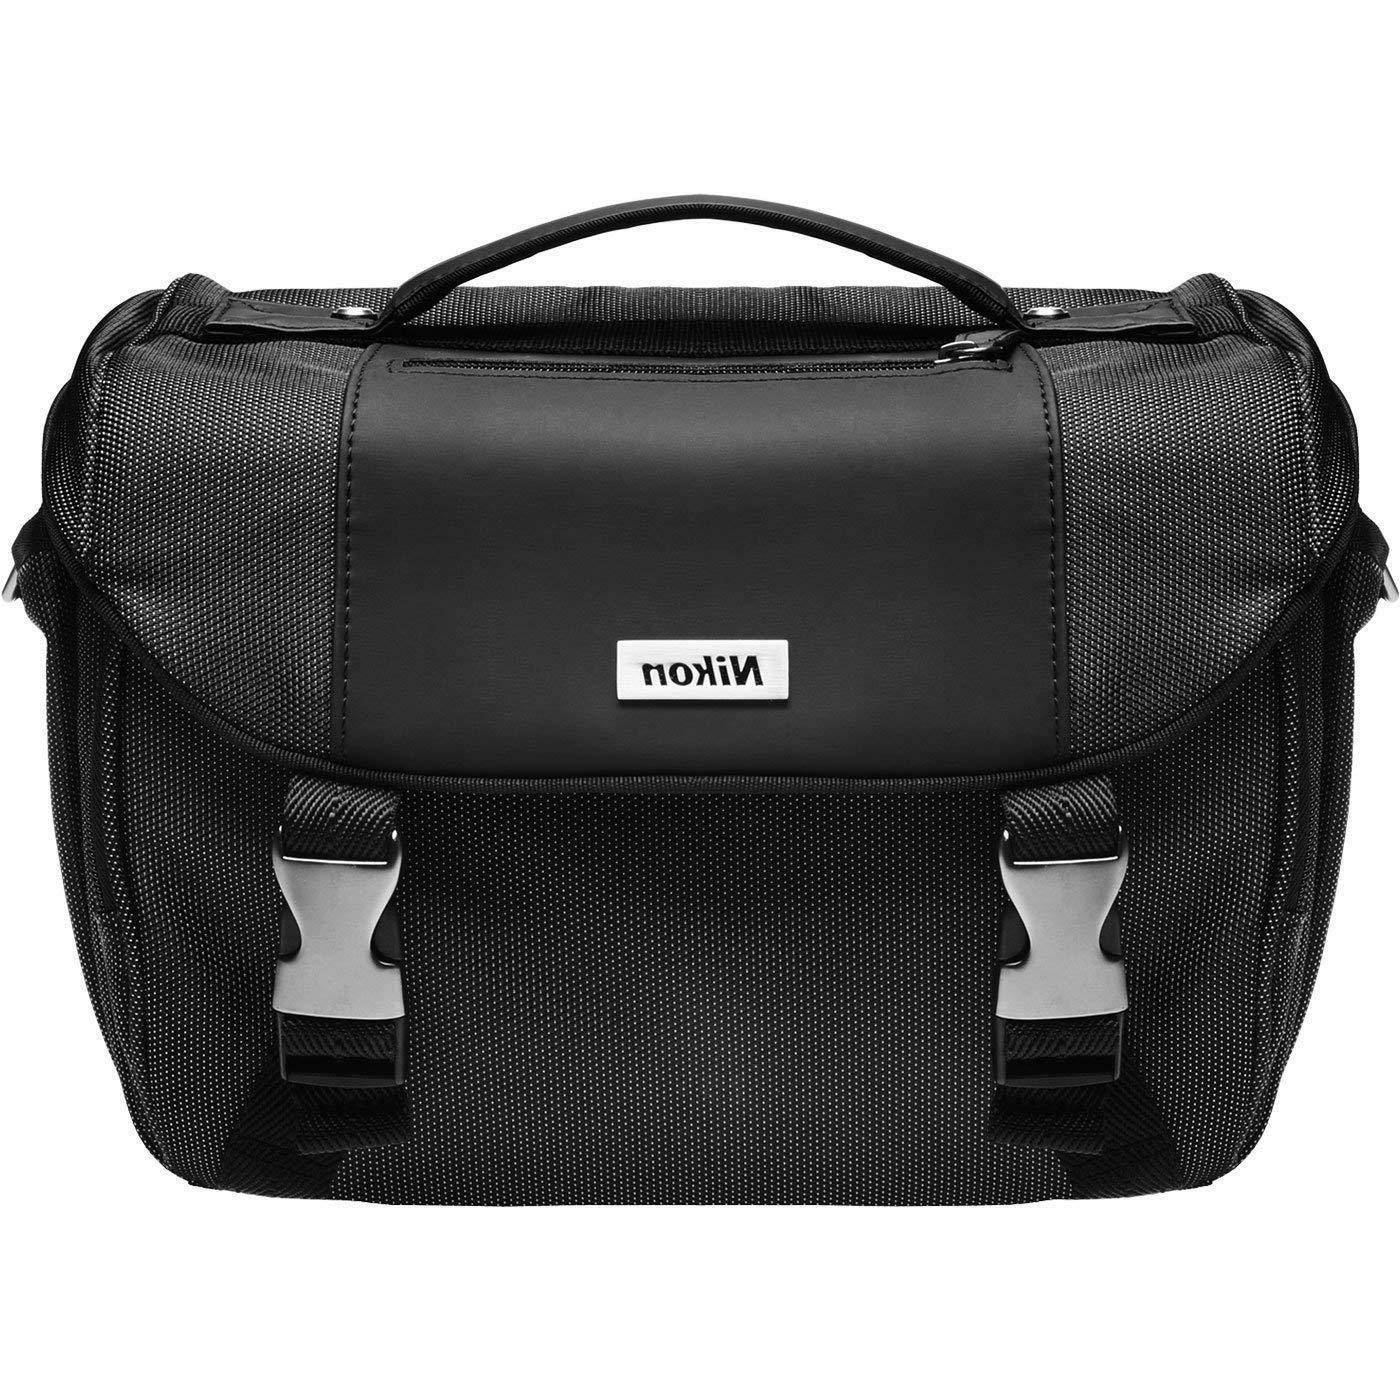 deluxe camera bag for d750 d850 d7200